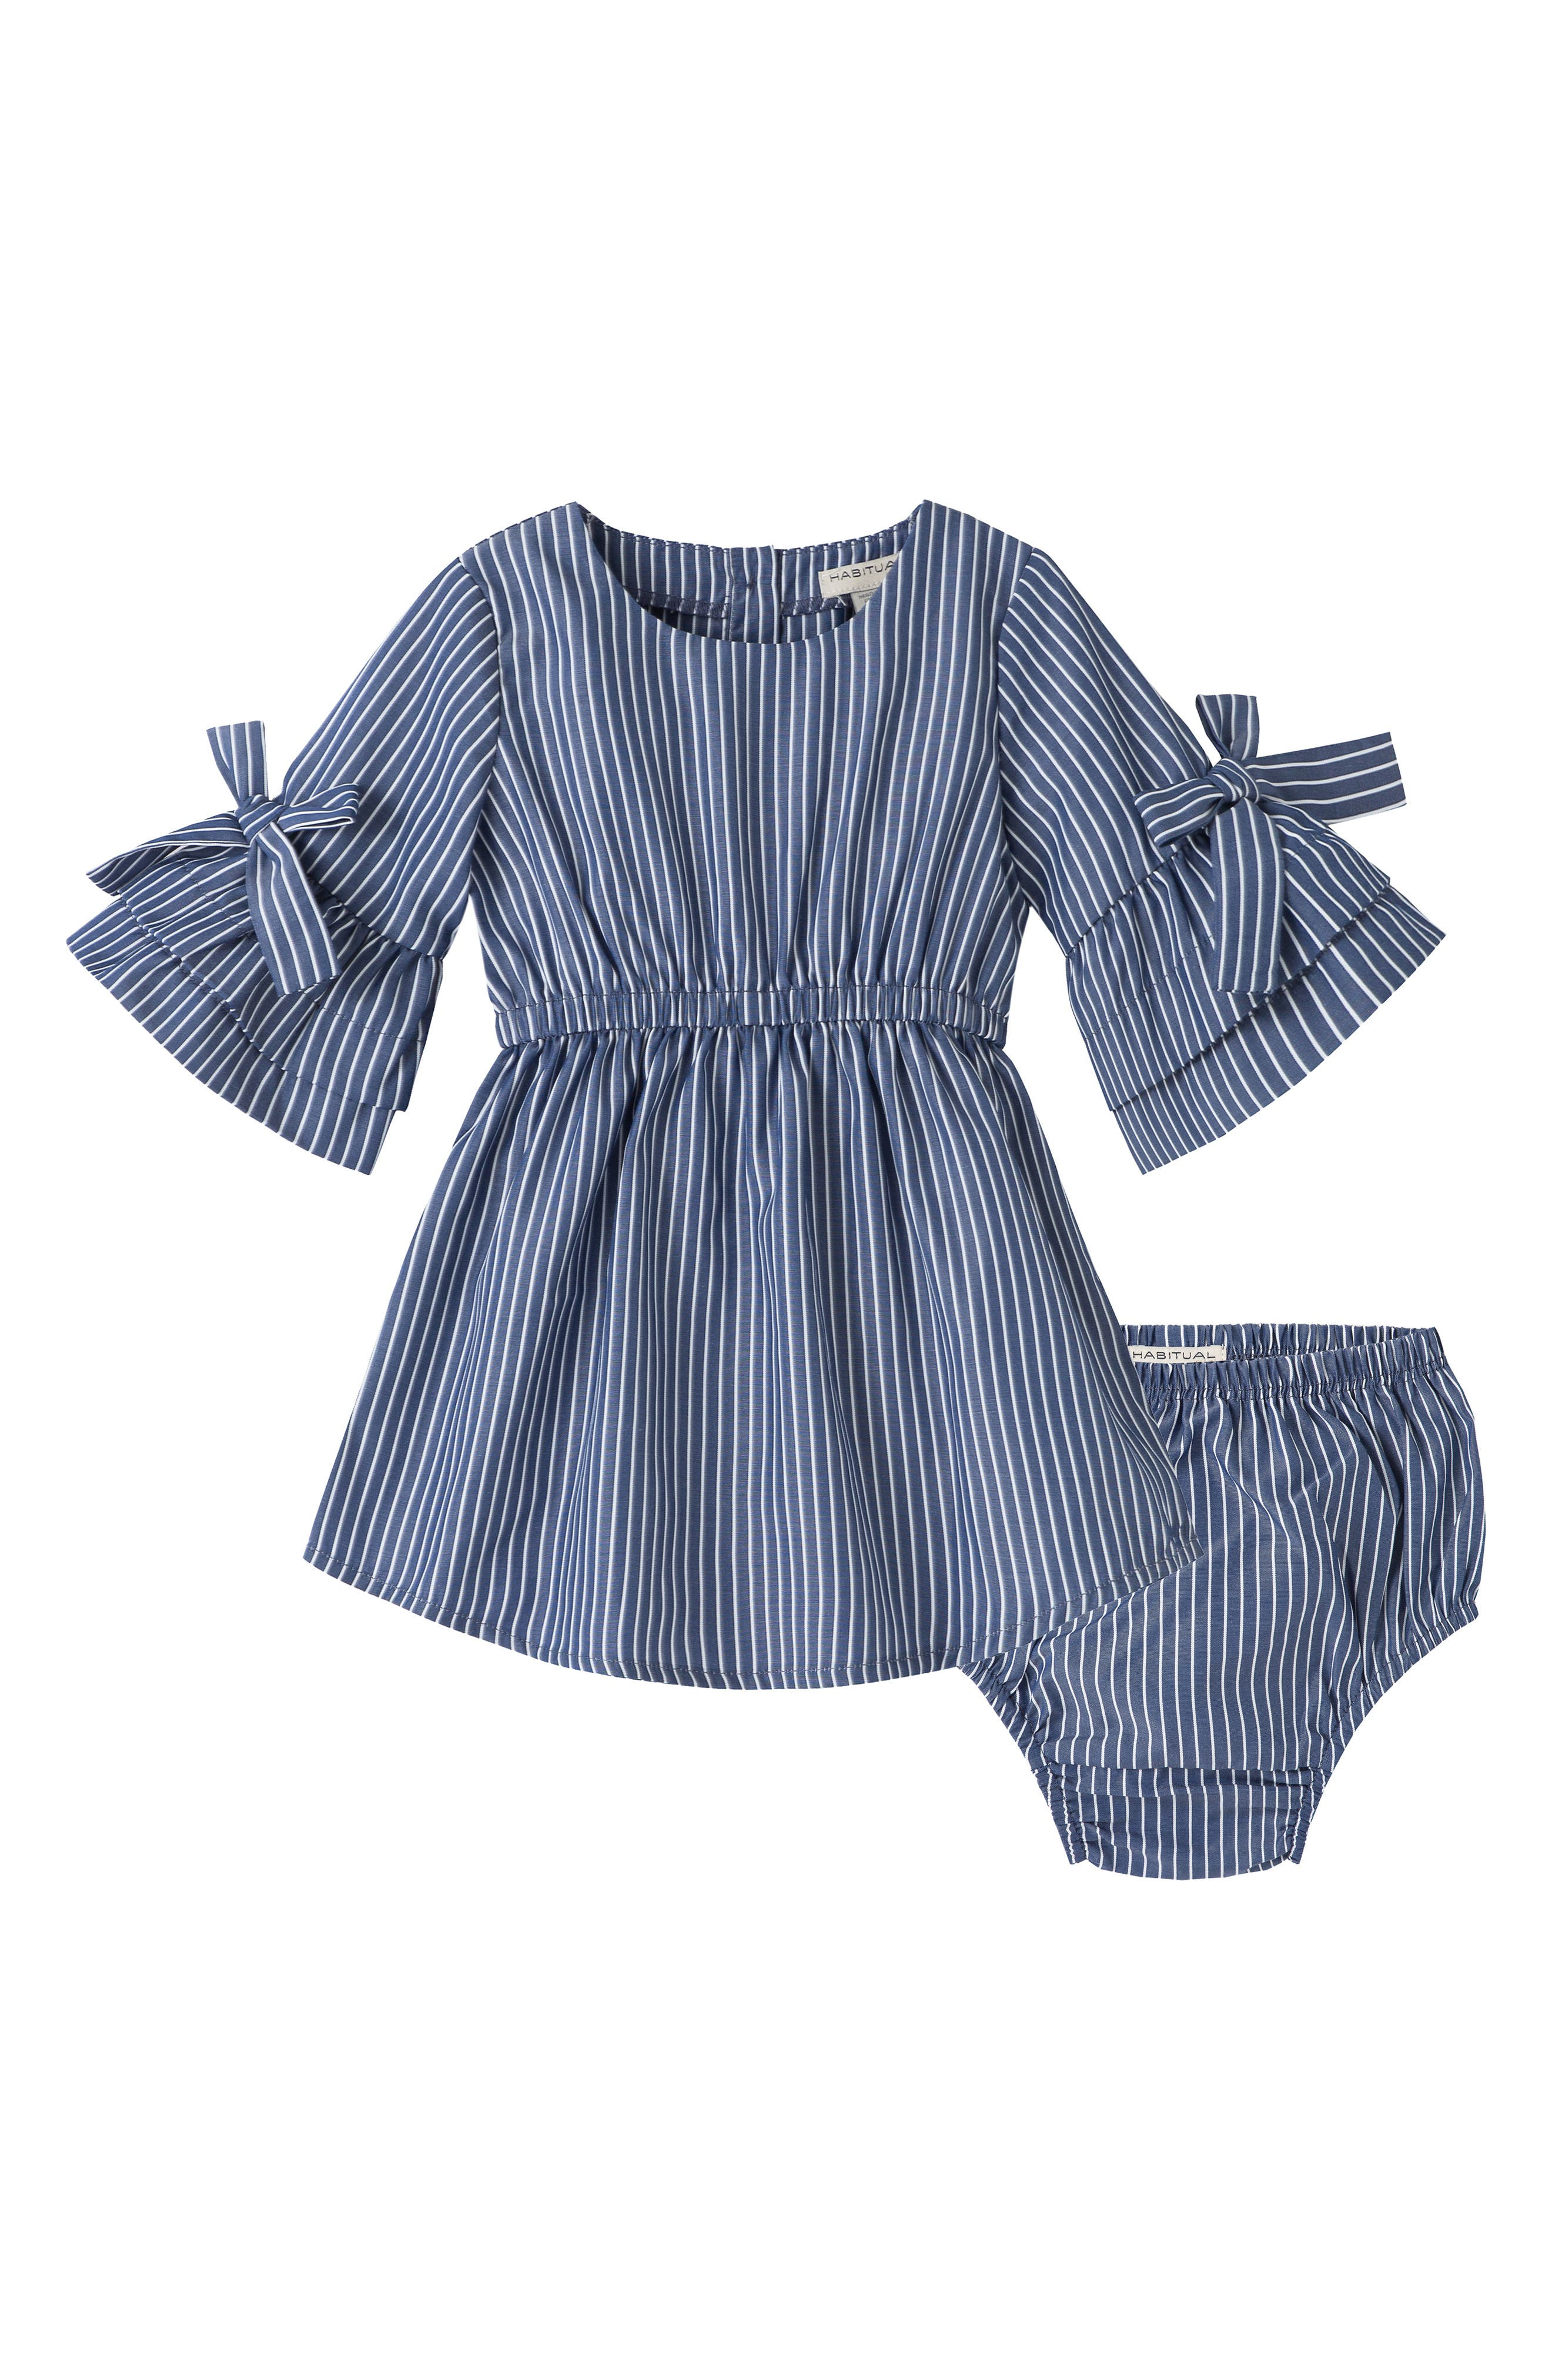 Newborn Baby Infant Girl Striped Sleeveless Dresses Party Birthday Dress Clothes